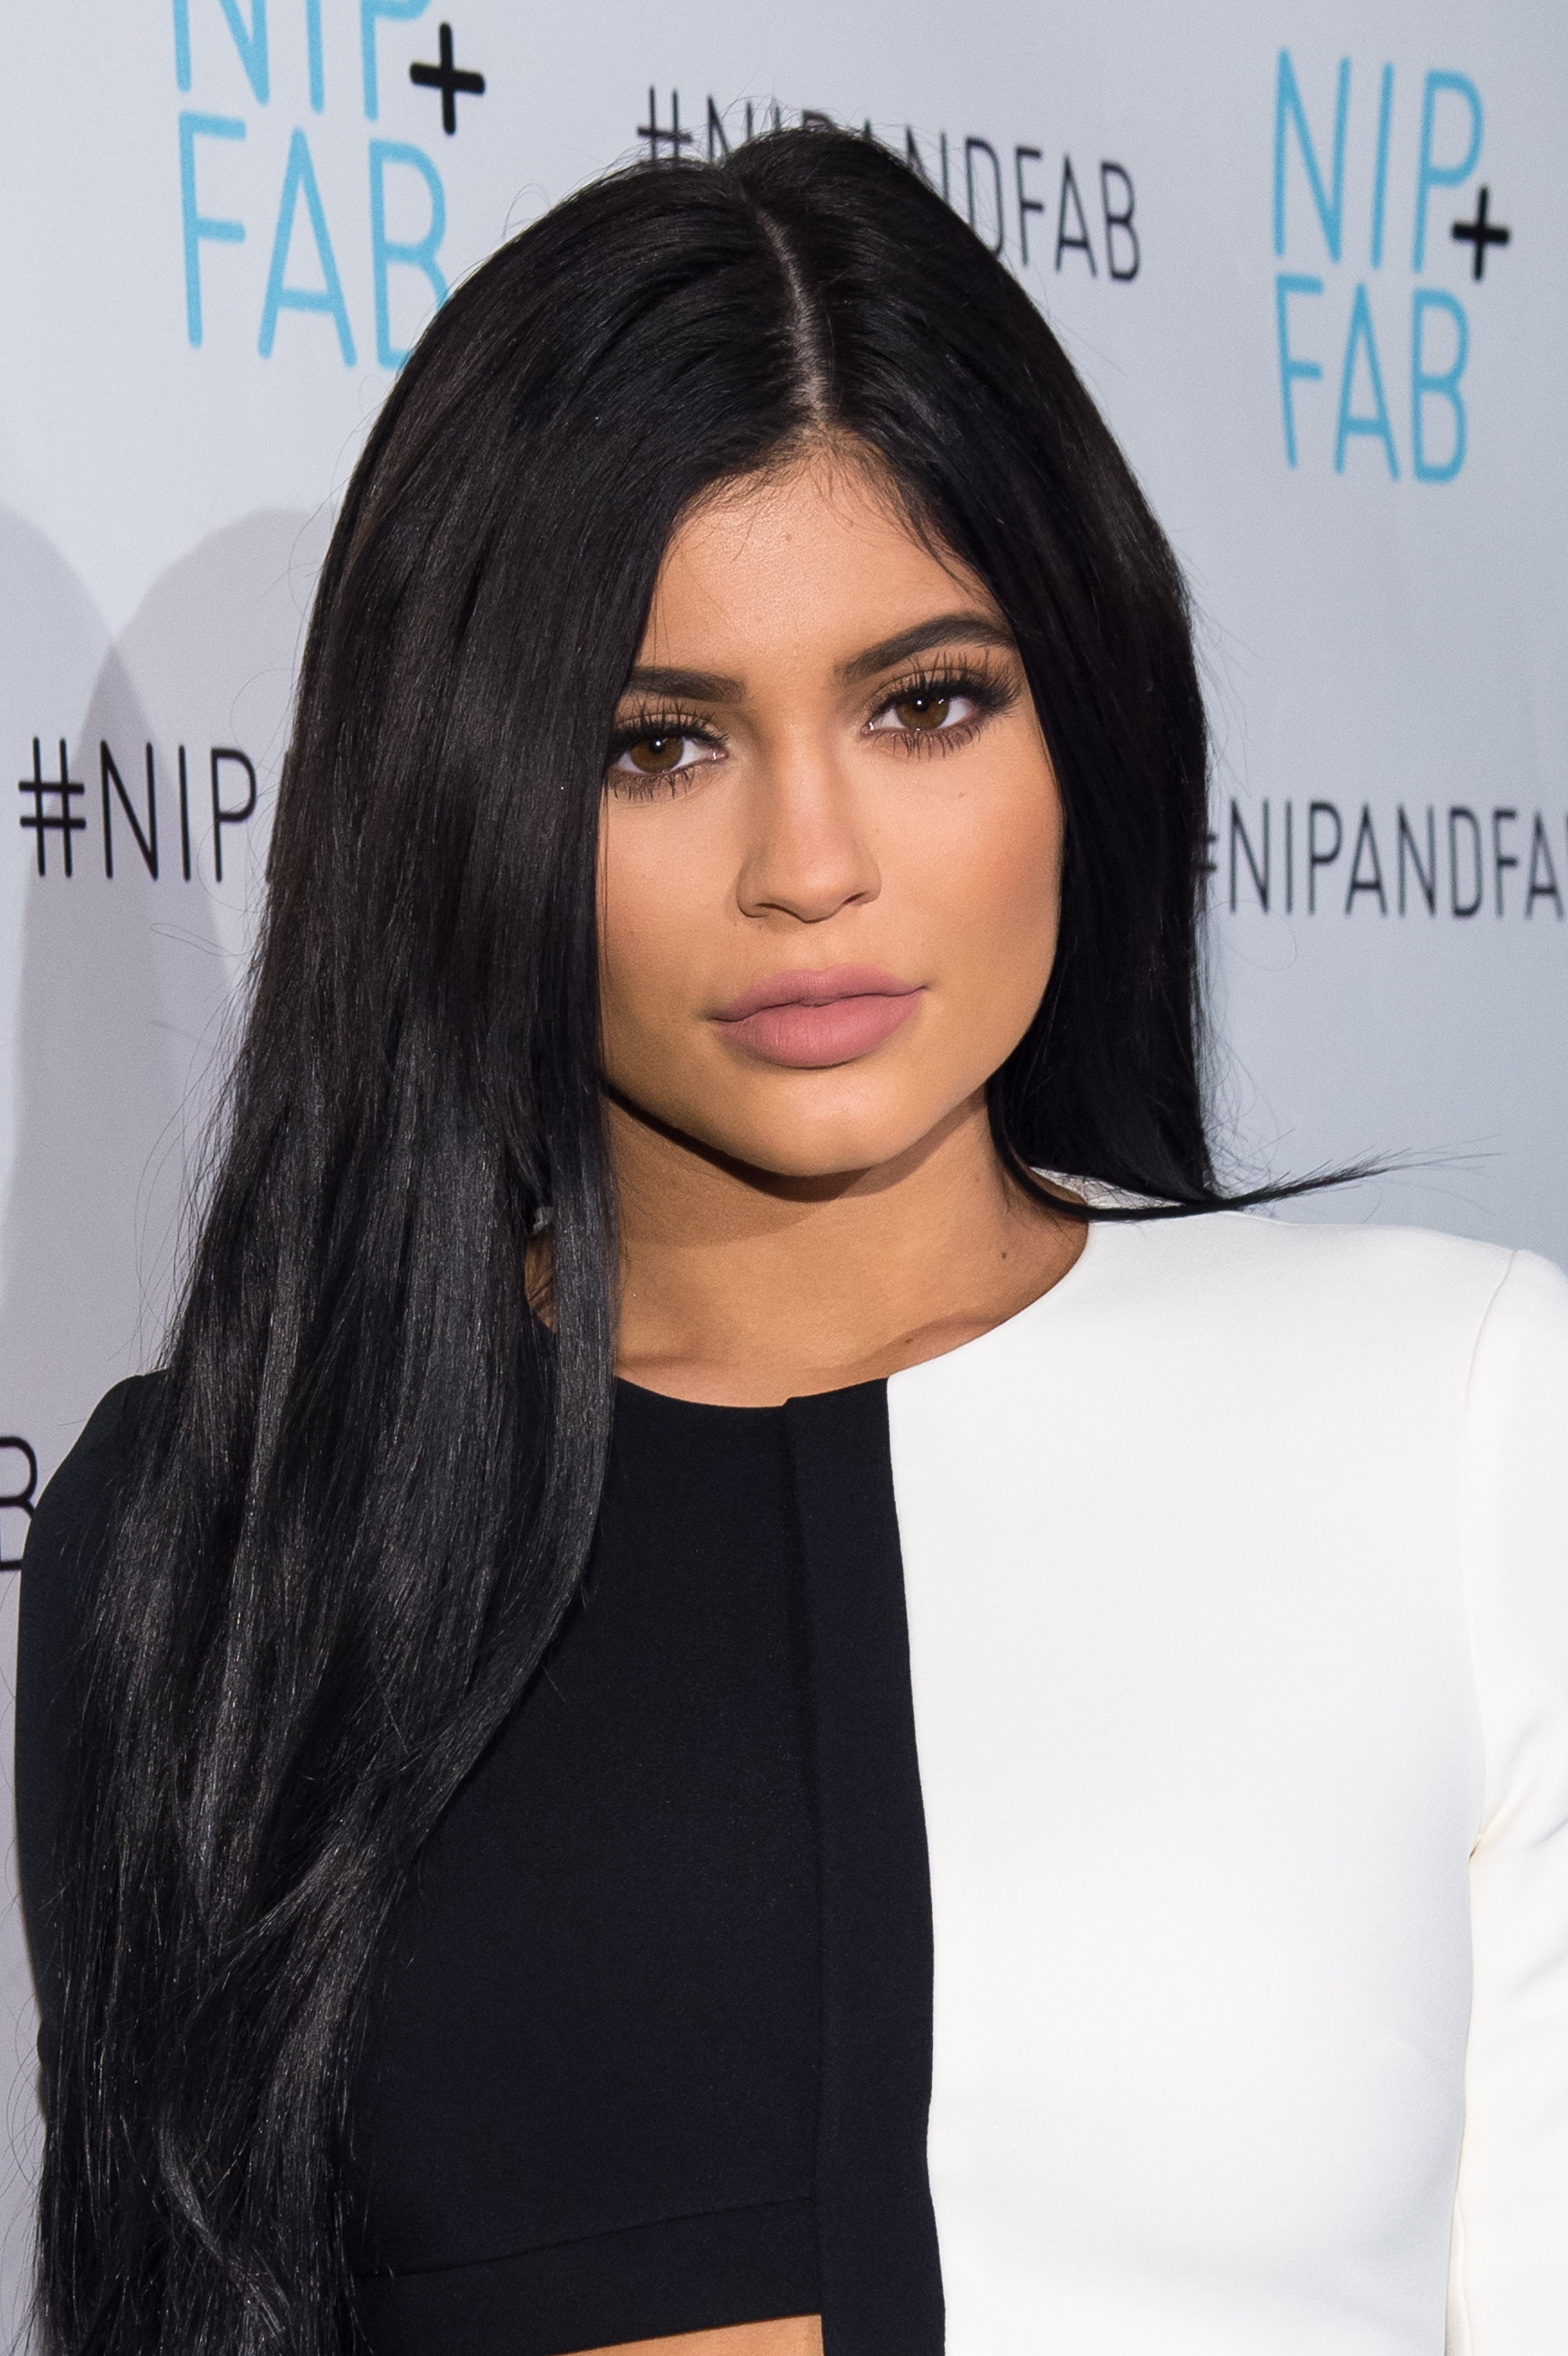 Kylie Jenners Short Haircut Reveal Proves Shes Committed To This